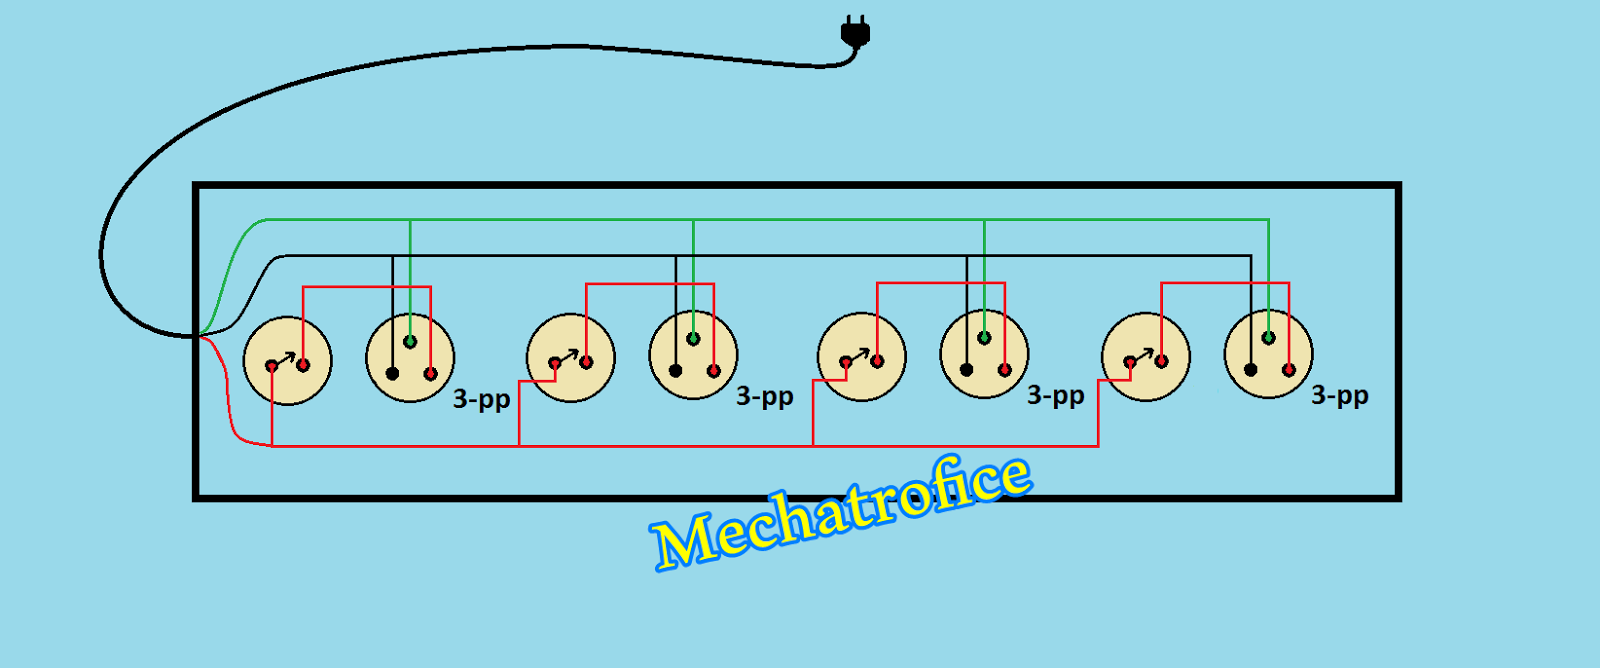 extension+cord+extension+real+circuit+wiring+diagram extension cord wiring diagram mechatrofice extension board wiring diagram at webbmarketing.co